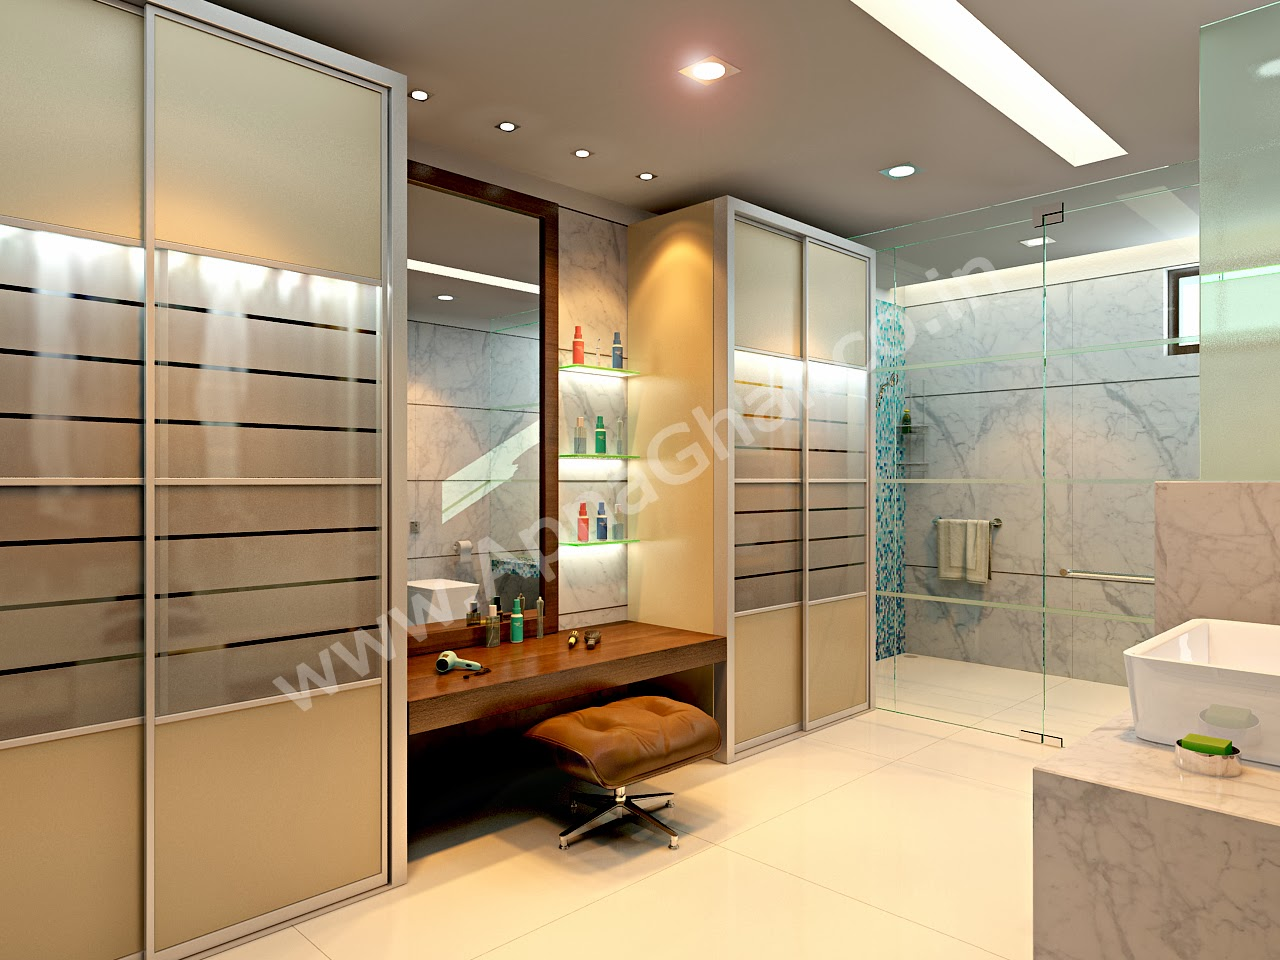 Luxurious Toilets Interior Design Ideas - Home Decorating Excellence